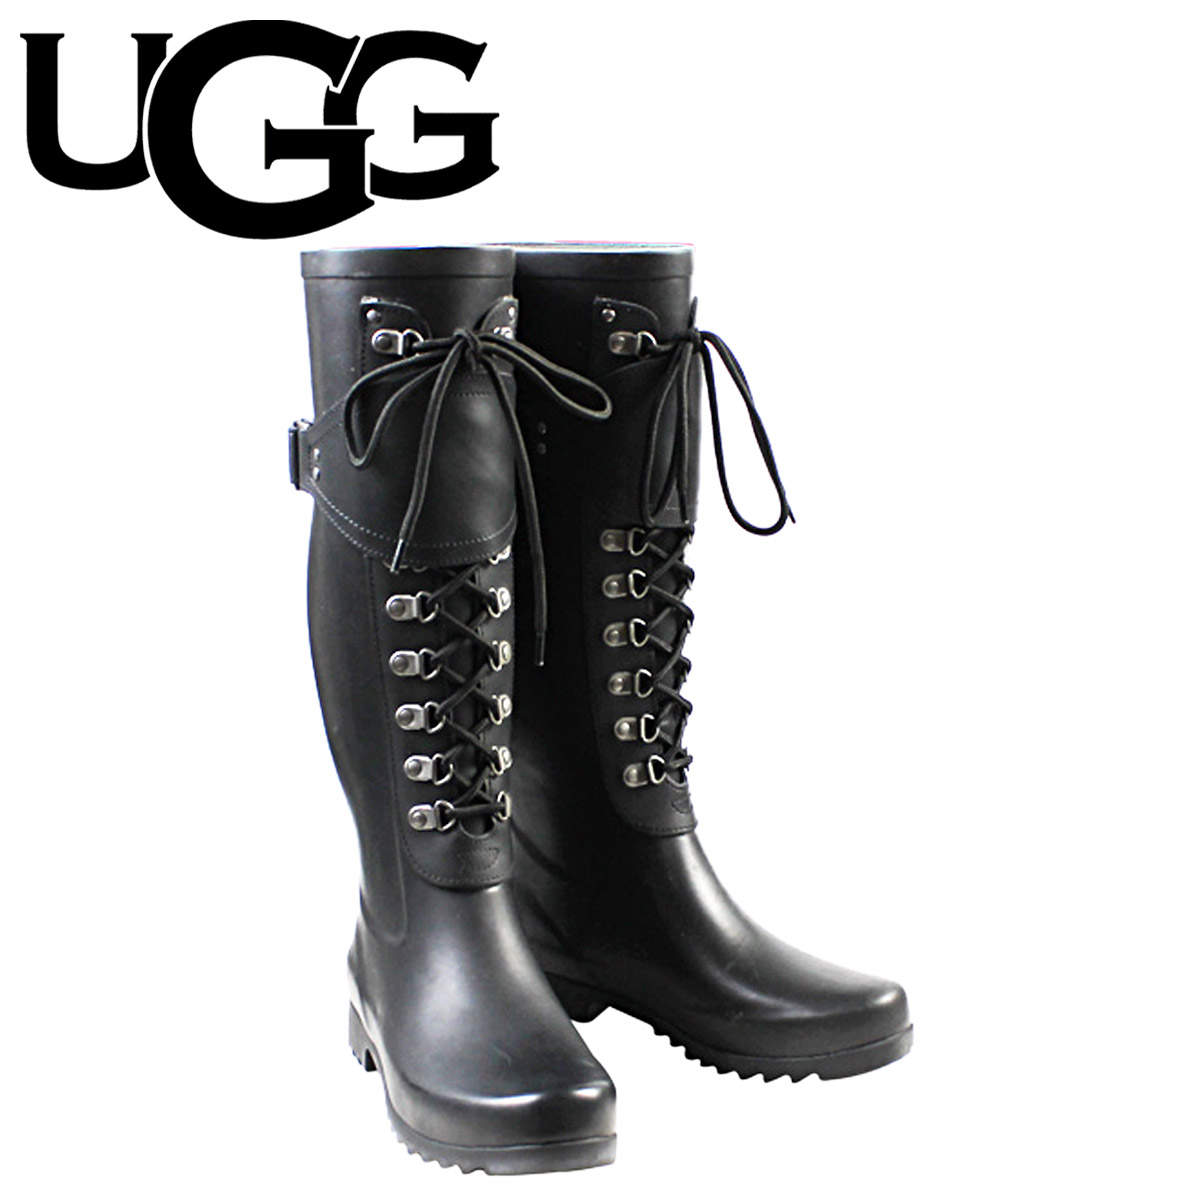 da6edd9a617 Whats up Sports   SOLD OUT  UGG UGG Madeleine boots knee high boots ...